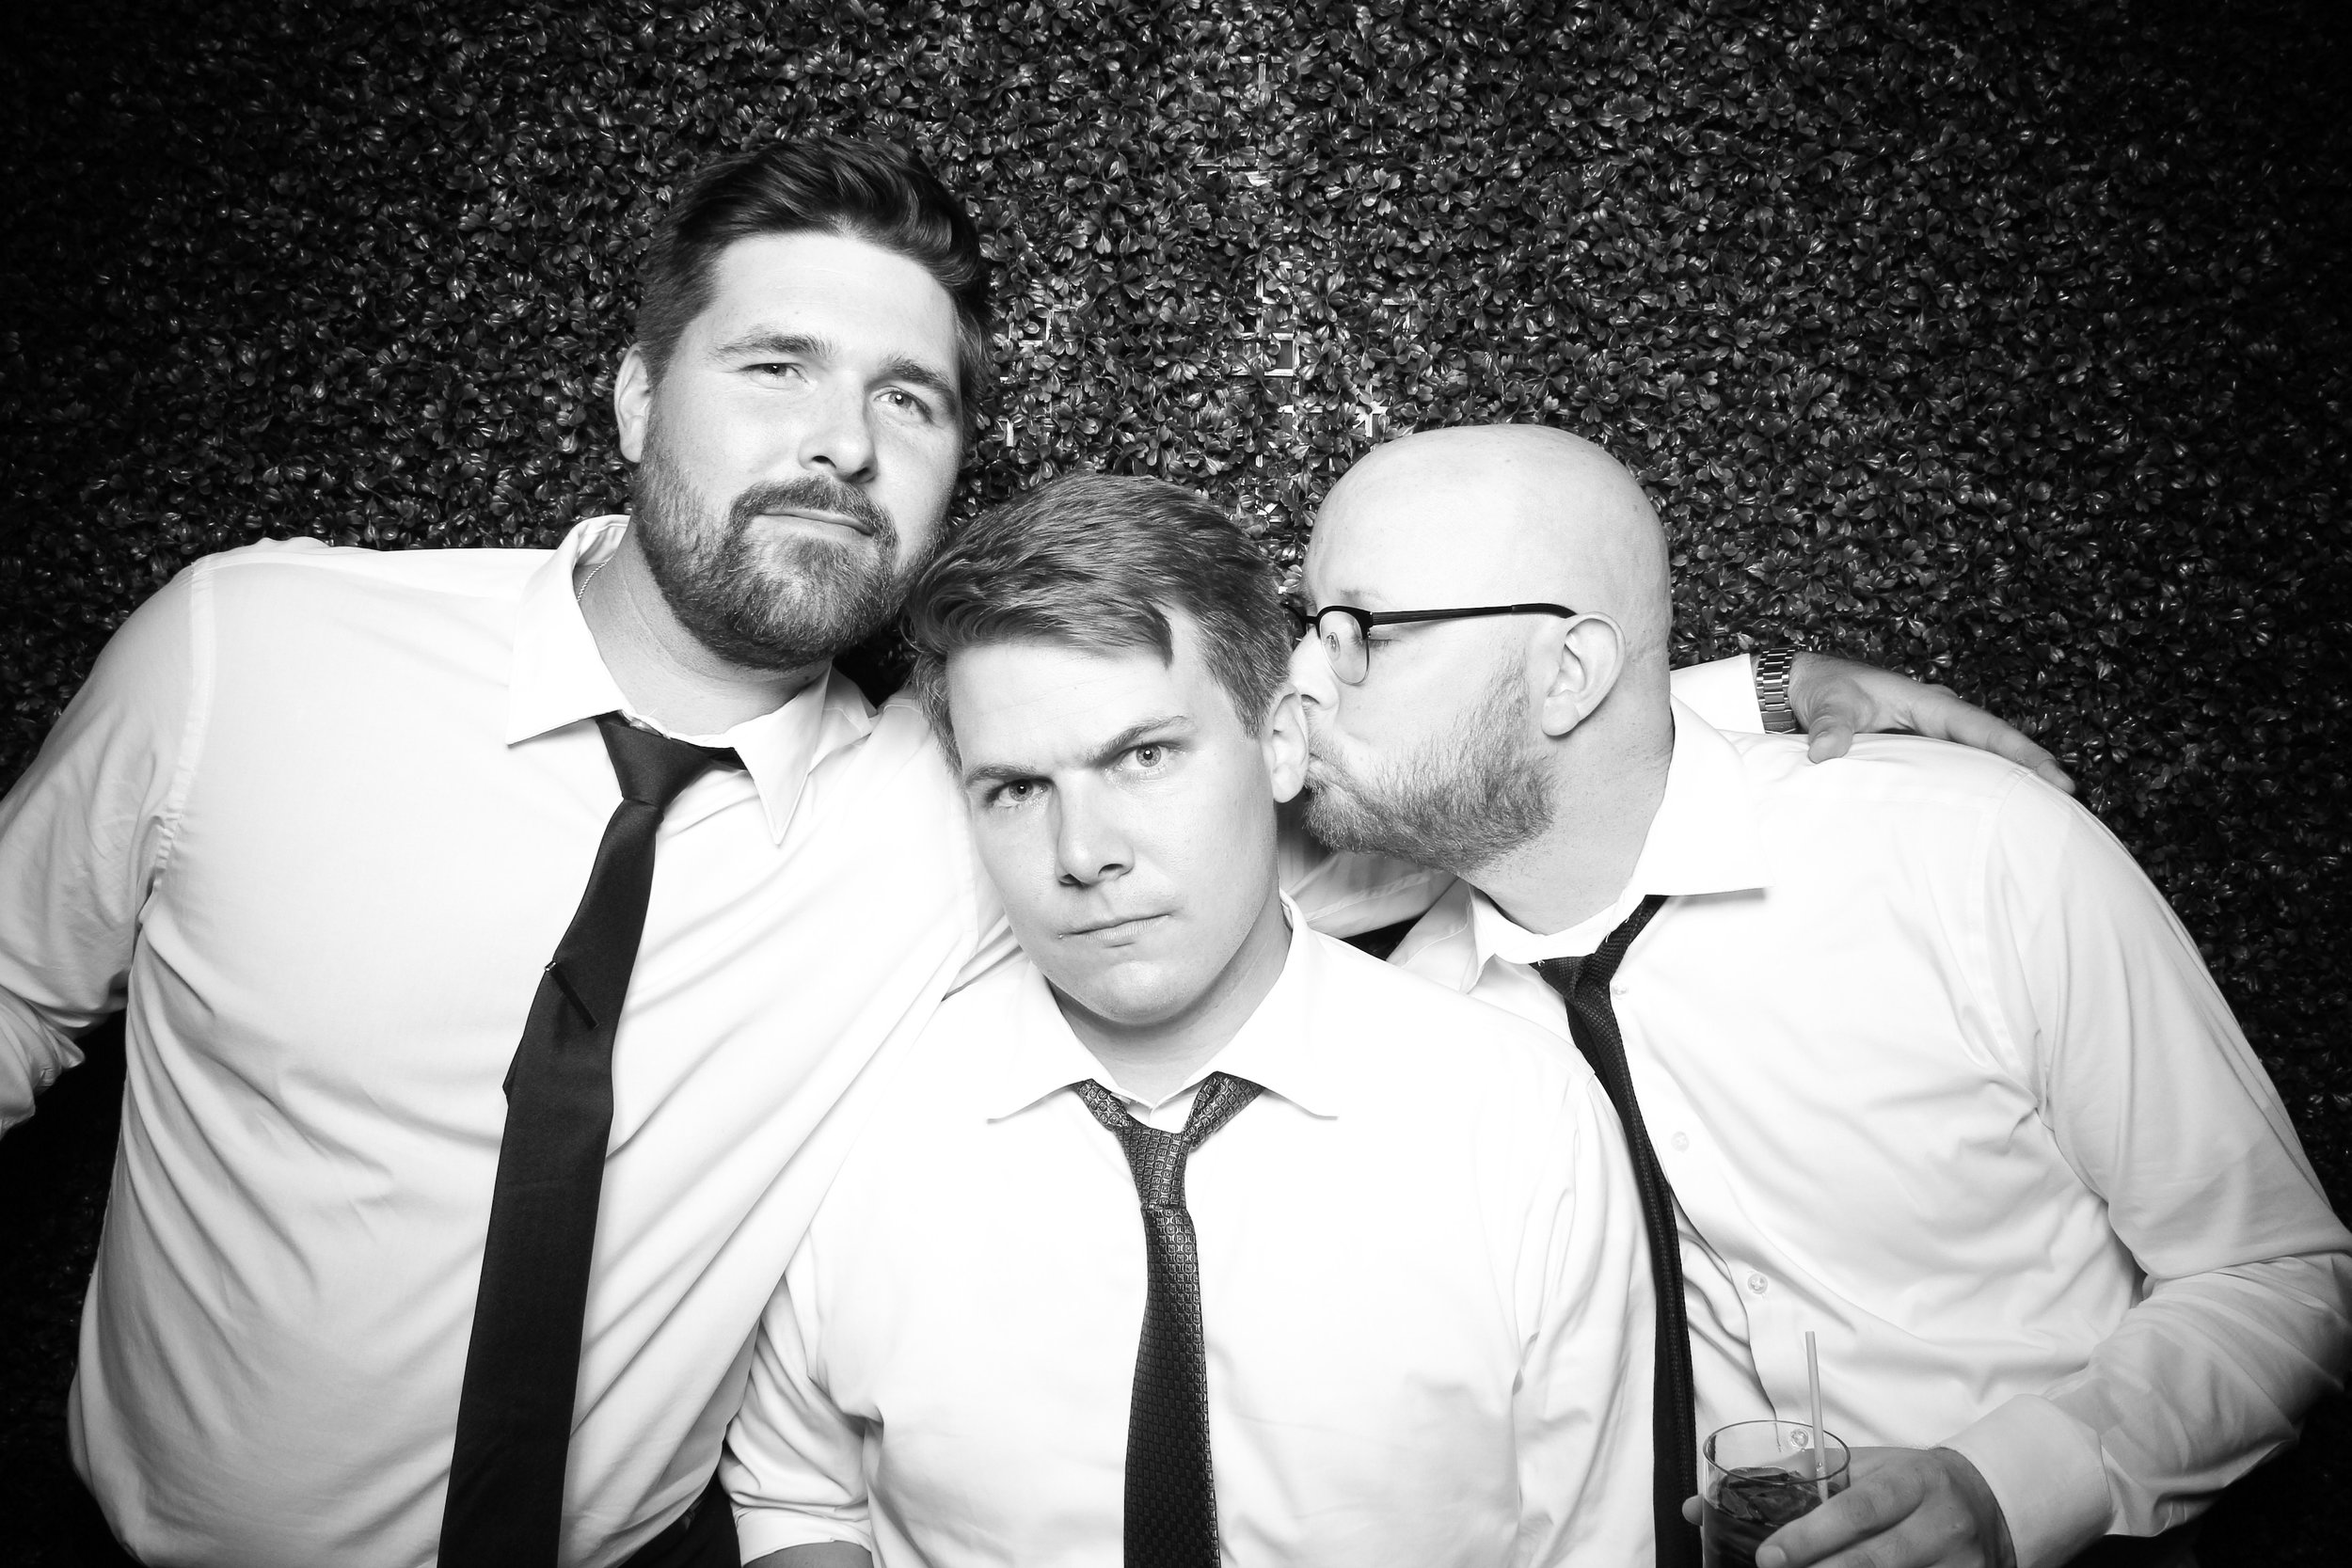 Ivy_Room_Chicago_Photo_Booth_Wedding_17.jpg